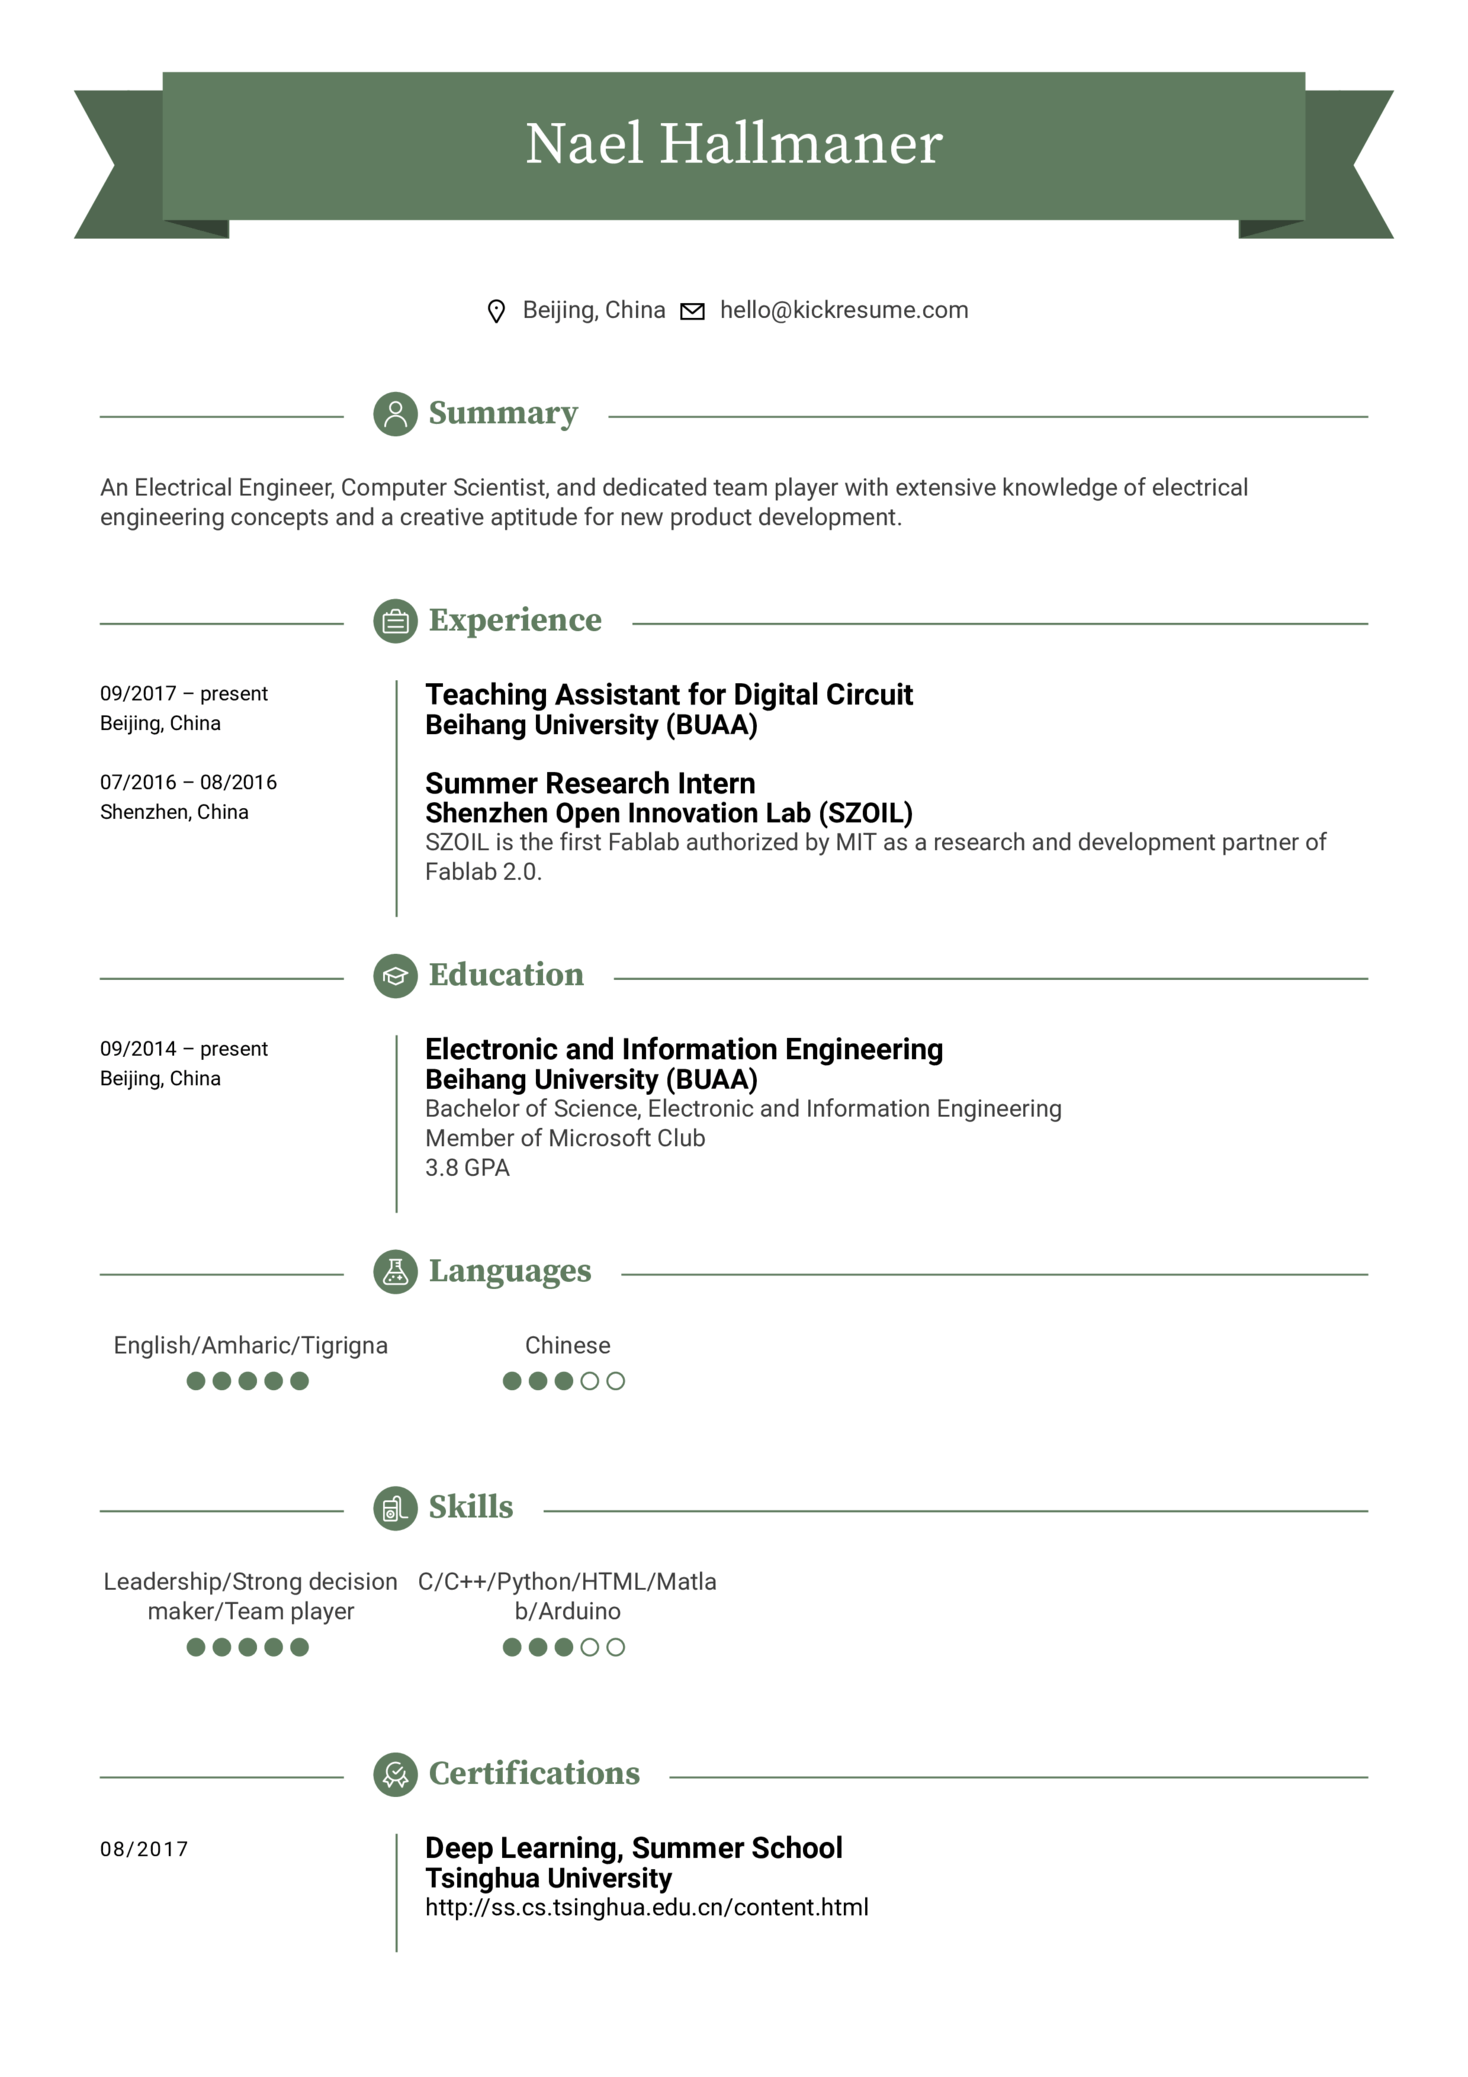 electrical engineer teaching assistant resume sample - Electrical Engineer Resume